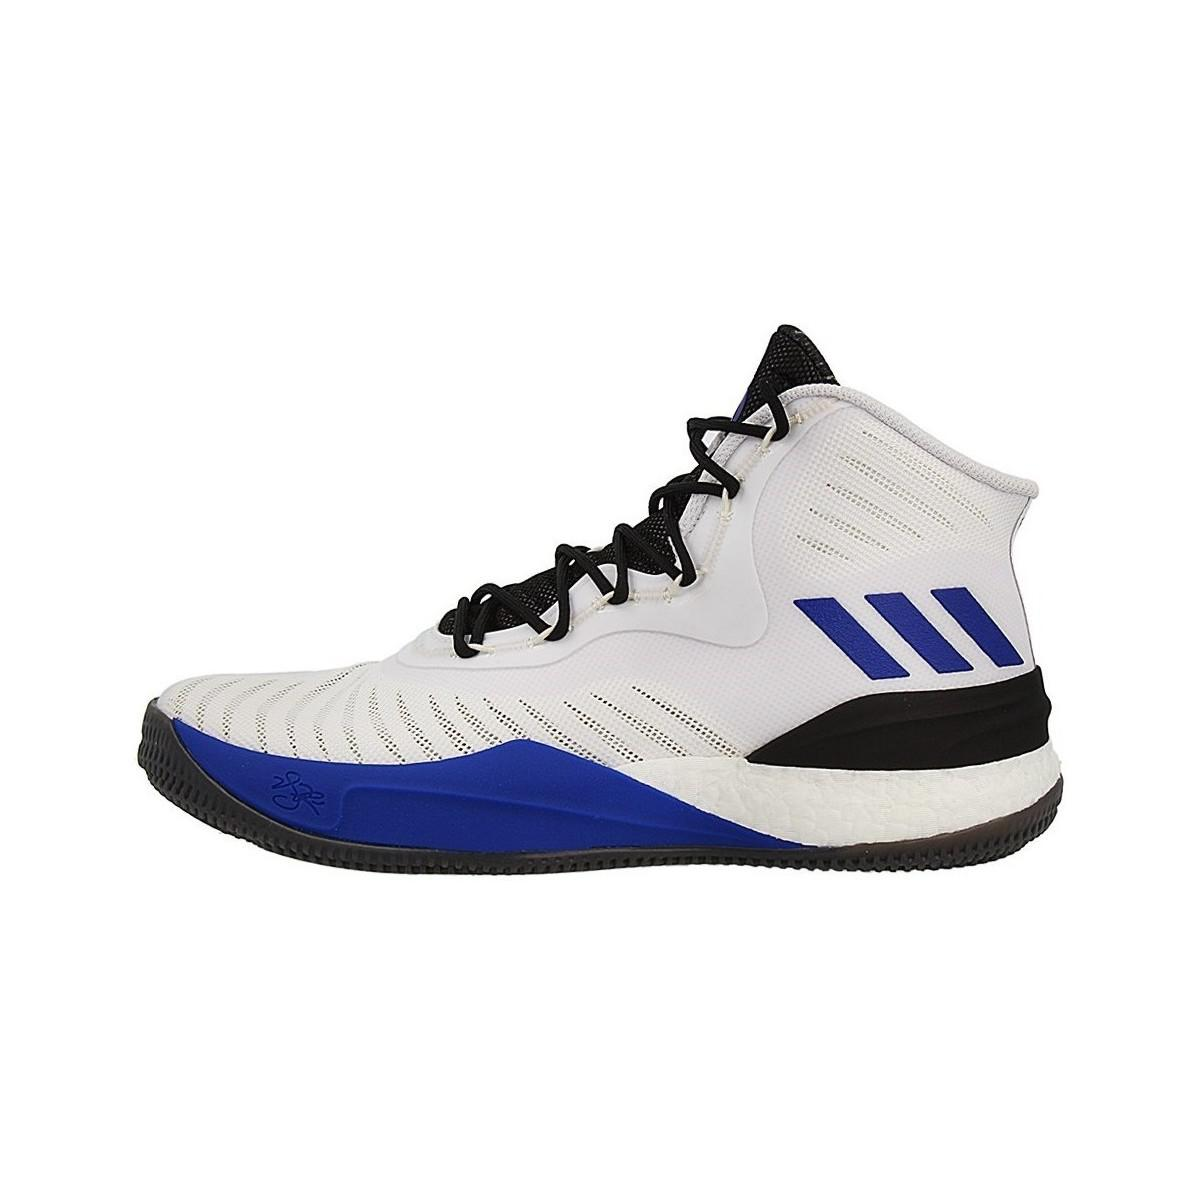 033a1648e7d0 Adidas D Rose 8 Men s Shoes (high-top Trainers) In White in White ...